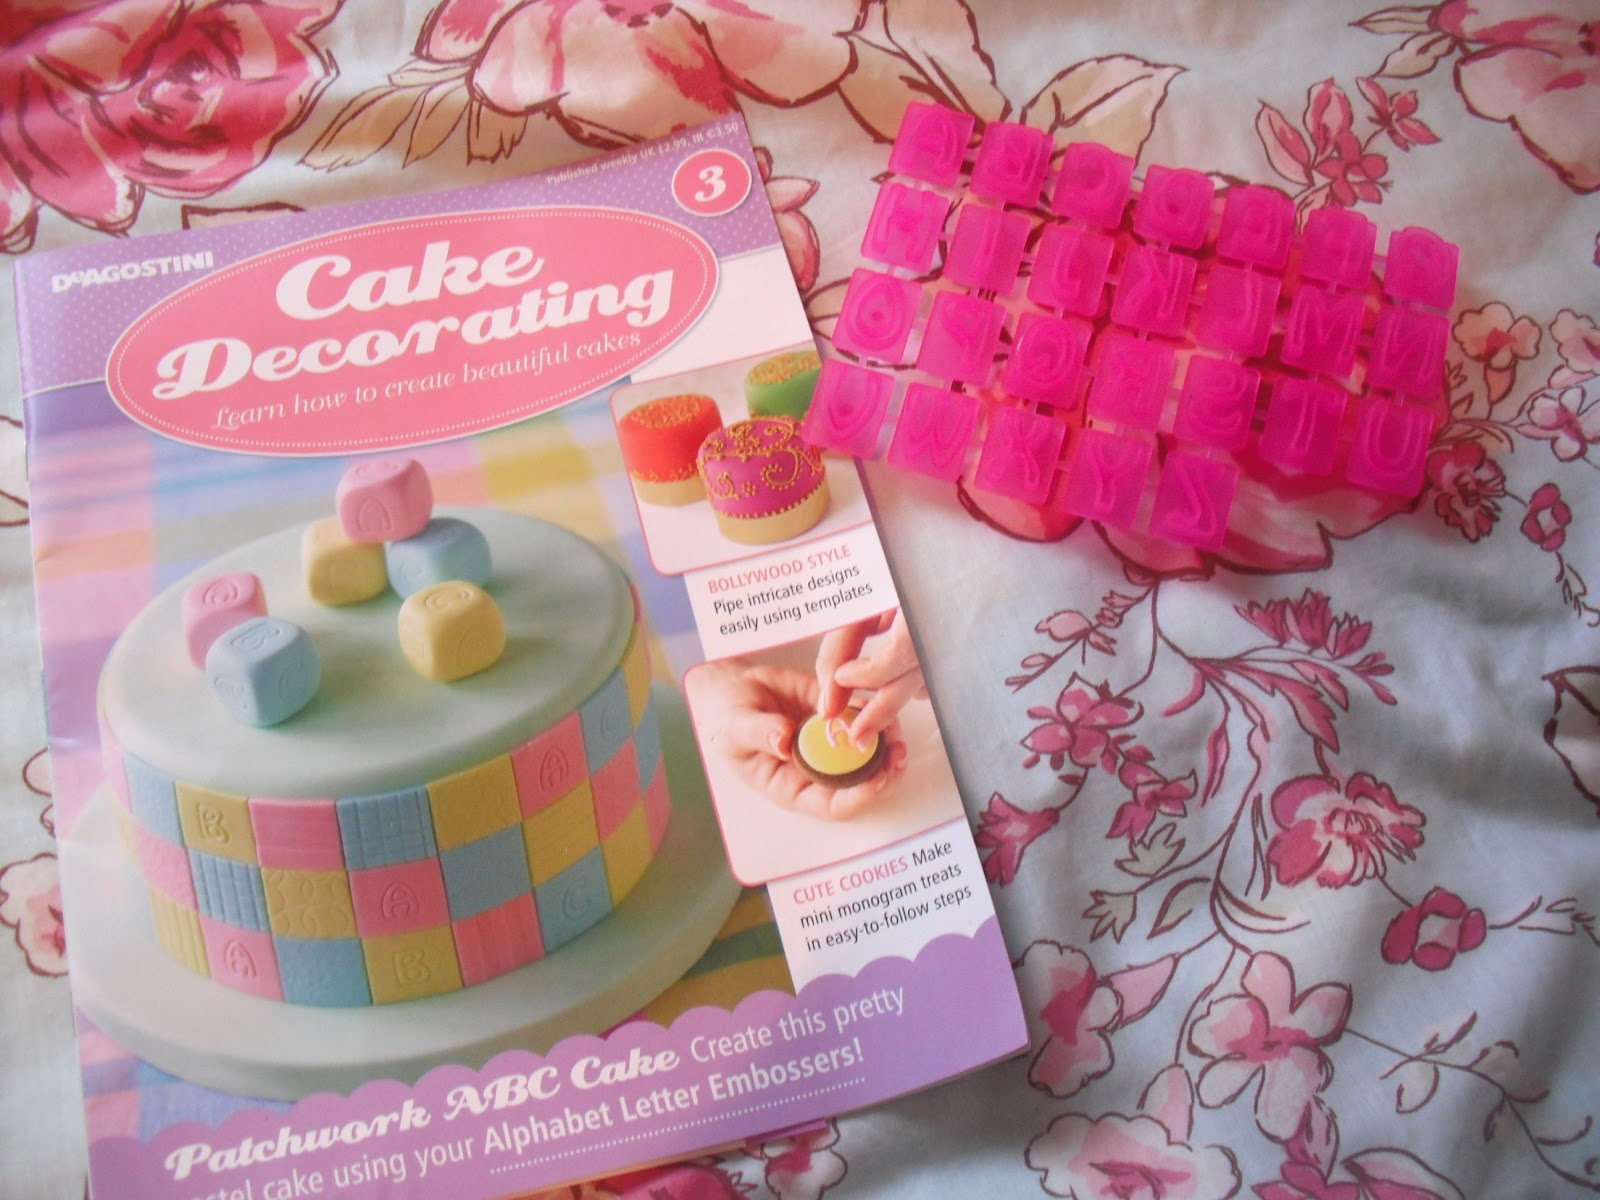 Cake Decorating Magazine Issue 3   Baking Bits            Victoria s     Issue 3 came with some bright pink alphabet embossers  They also suggest  that you can use them as cutters to cut out tiny letter  but although I  haven t